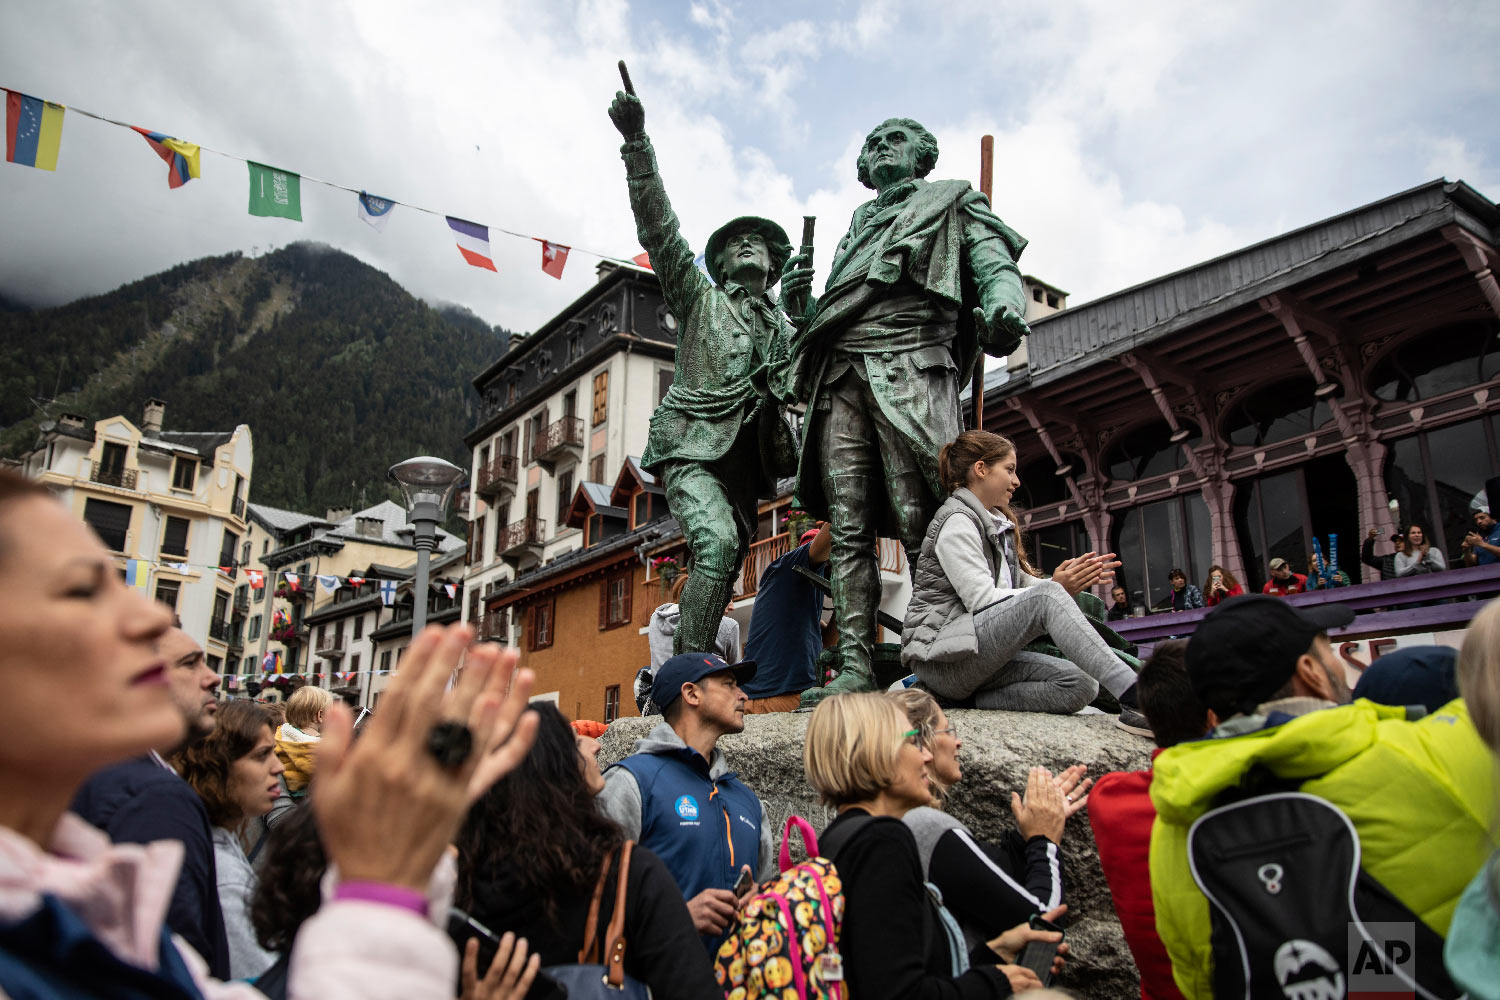 Supporters wait for the arrival of Xavier Thevenard, the winner of the 170km Ultra-Trail Mont-Blanc (UTMB), in the center of Chamonix, French Alps, Sept 1, 2018. (AP Photo/Laurent Cipriani)